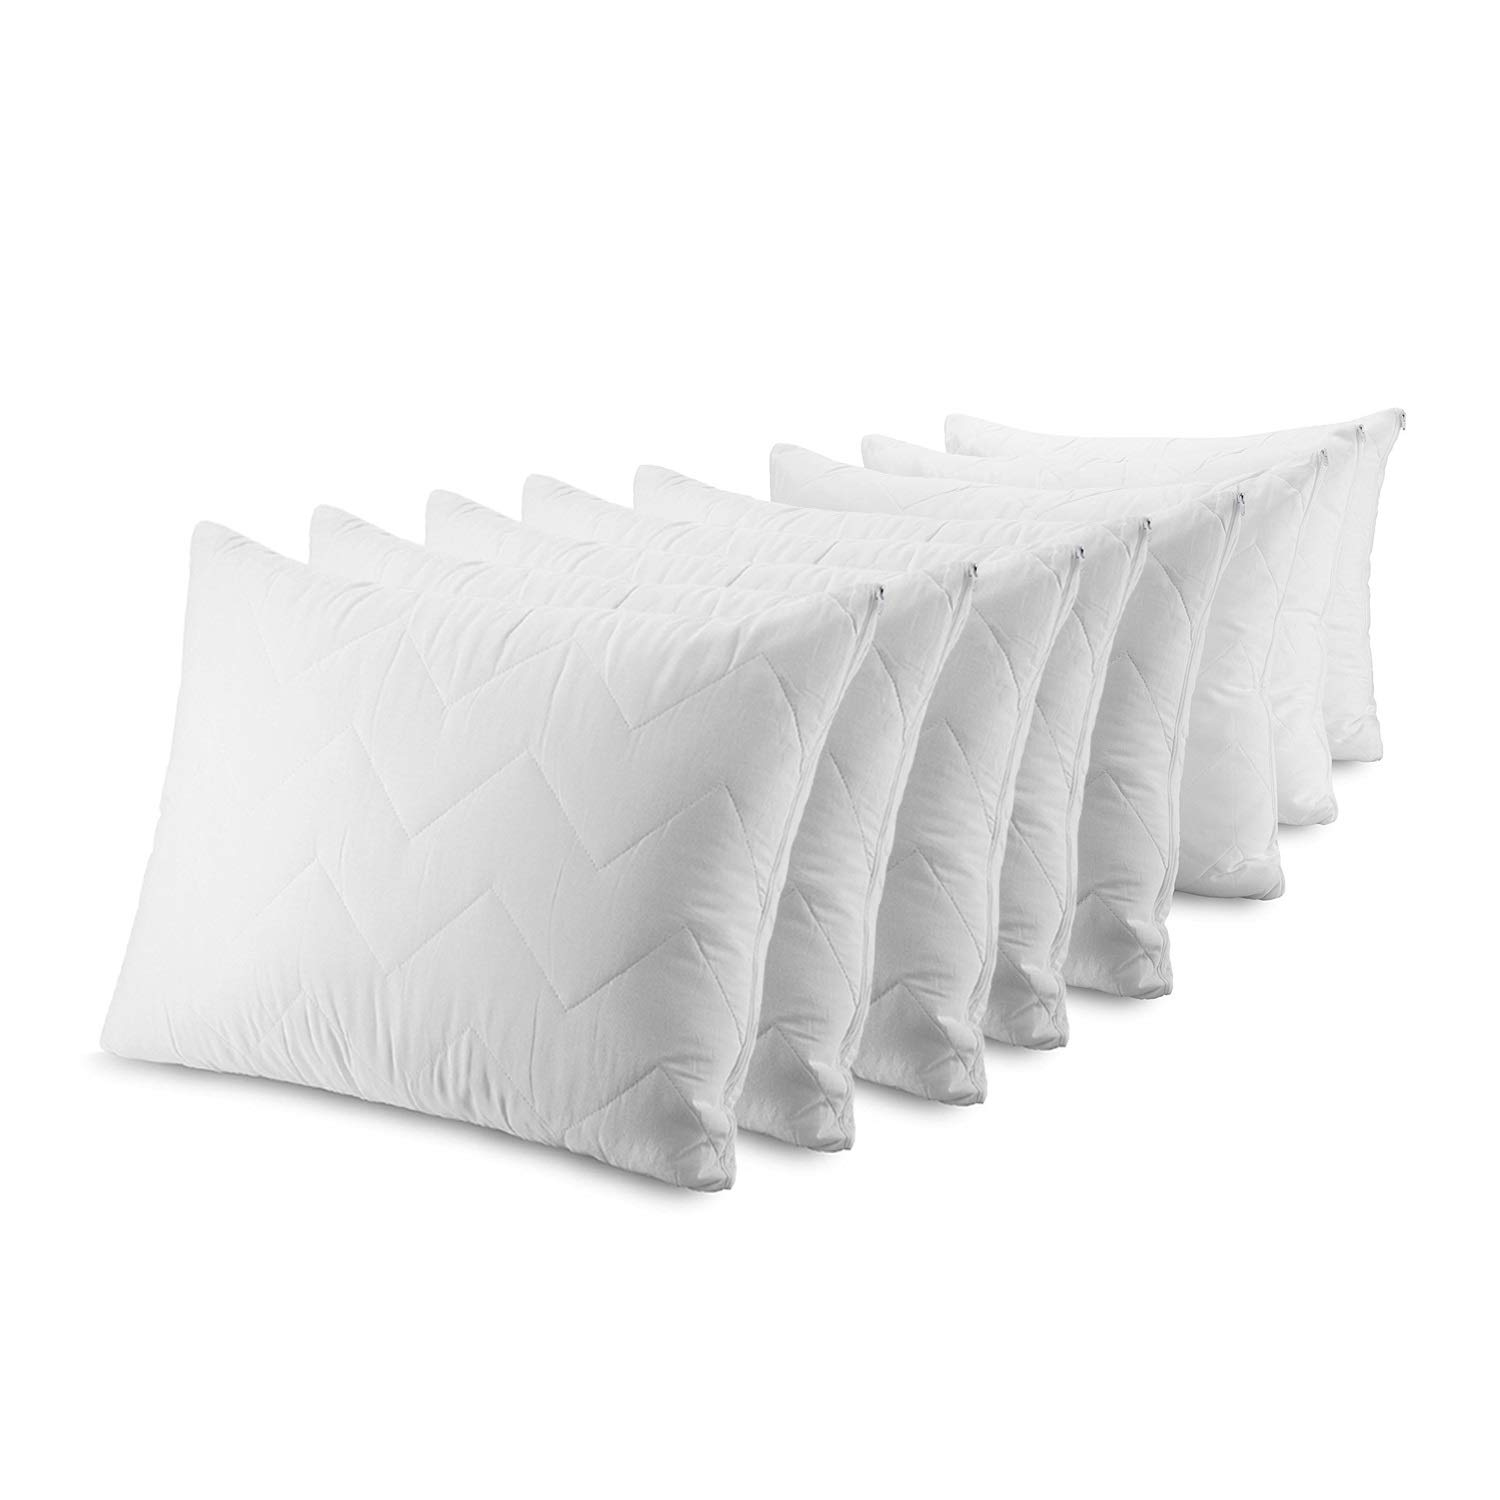 Waterguard Waterproof Pillow Protectors Bed Bug Control, Zippered Quilted, Thick Pillow Covers, (8 Pieces) 100% Cotton Top Pillow Encasement - Standard Size (20x26) Set of 8 by Waterguard